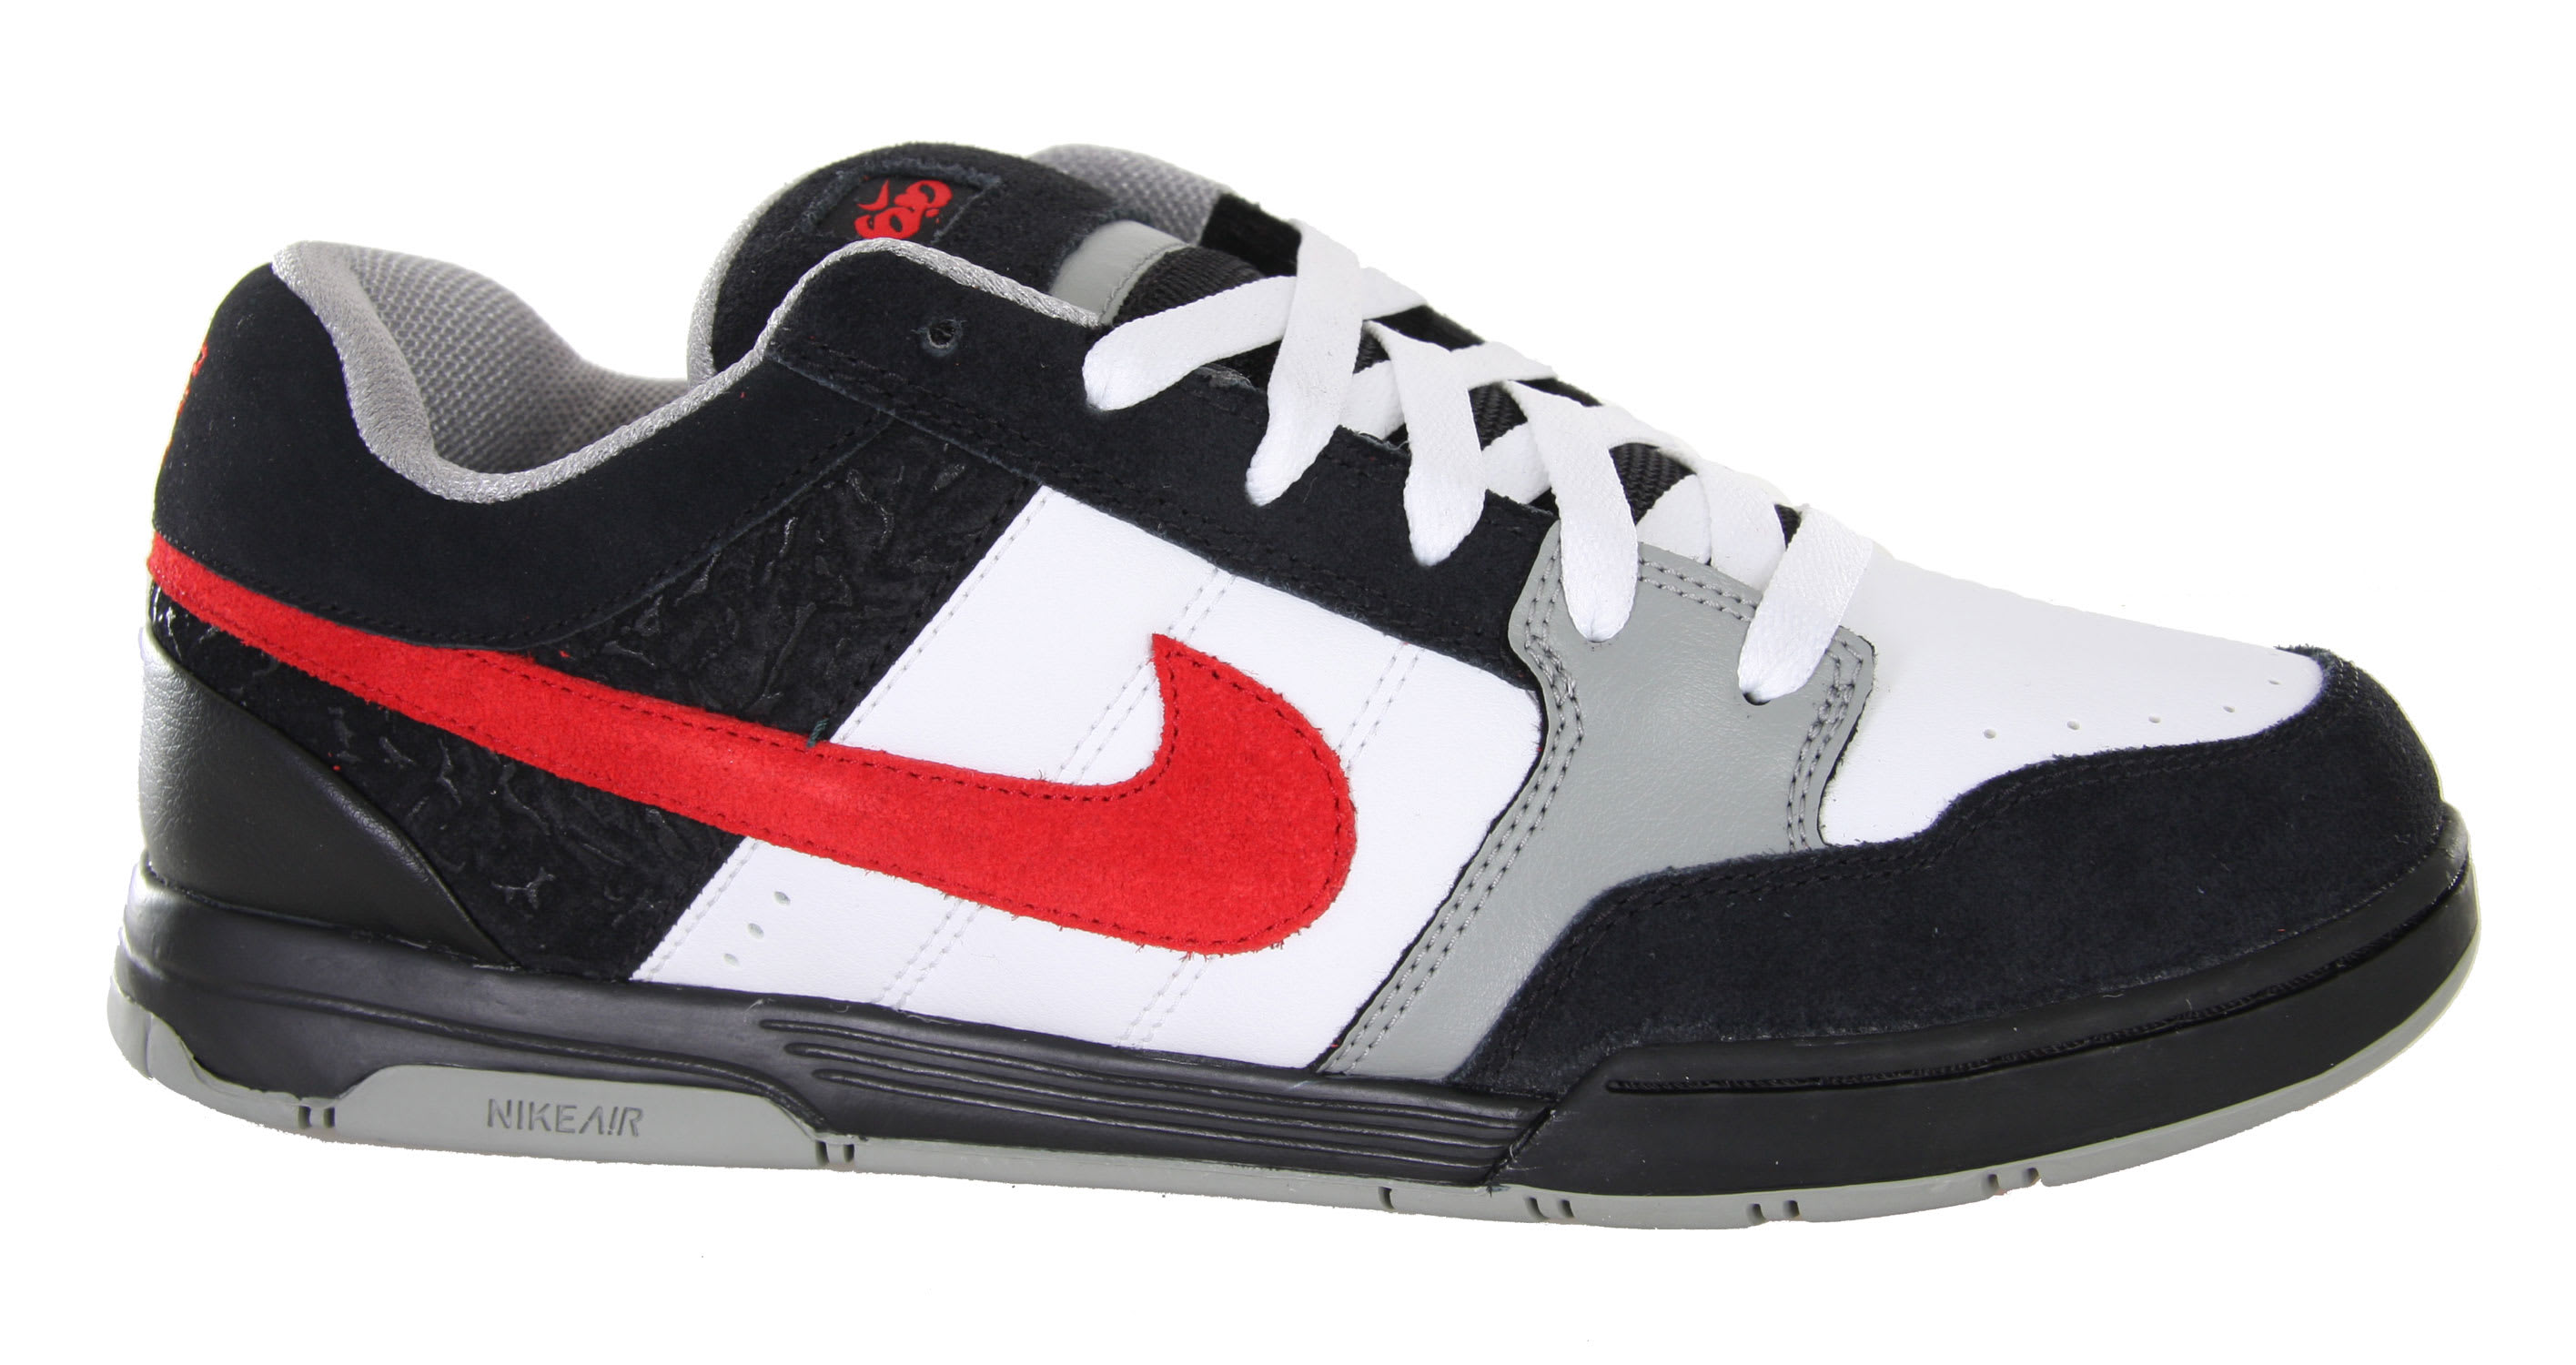 quality design a24ab c383b Nike Air Mogan Skate Shoes - thumbnail 1